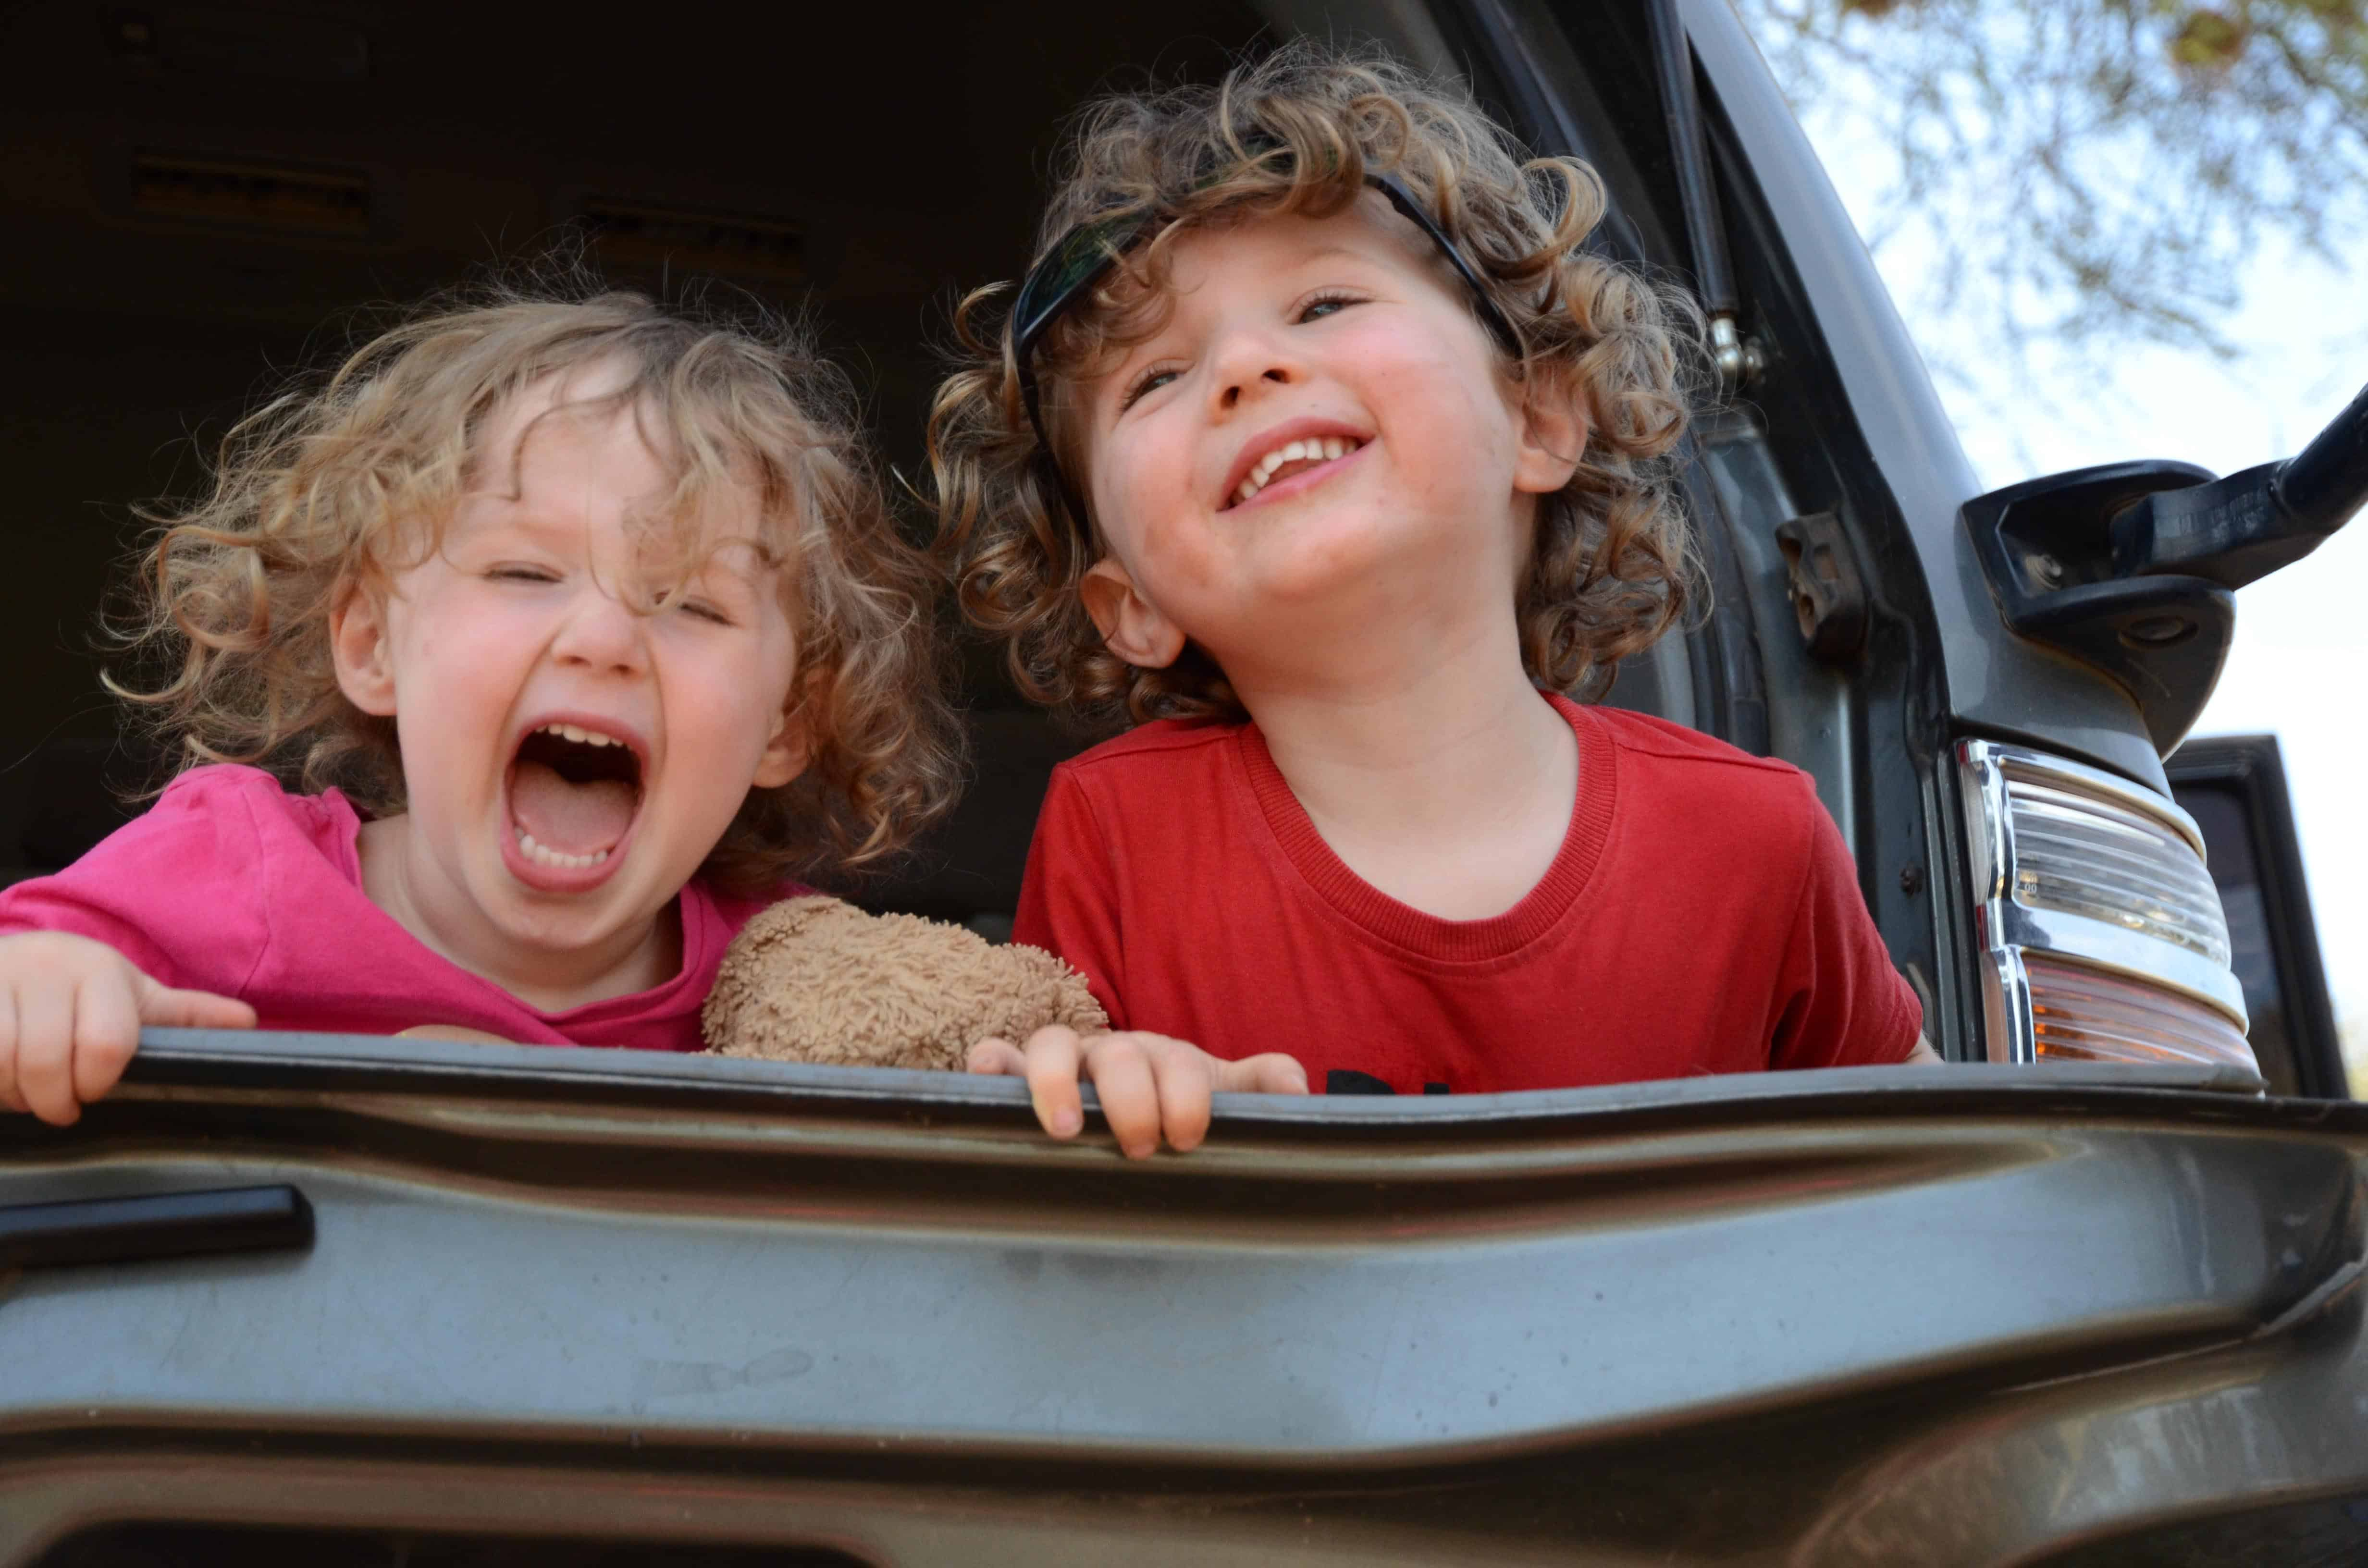 Two toddlers laughing in back of car with bushy hair